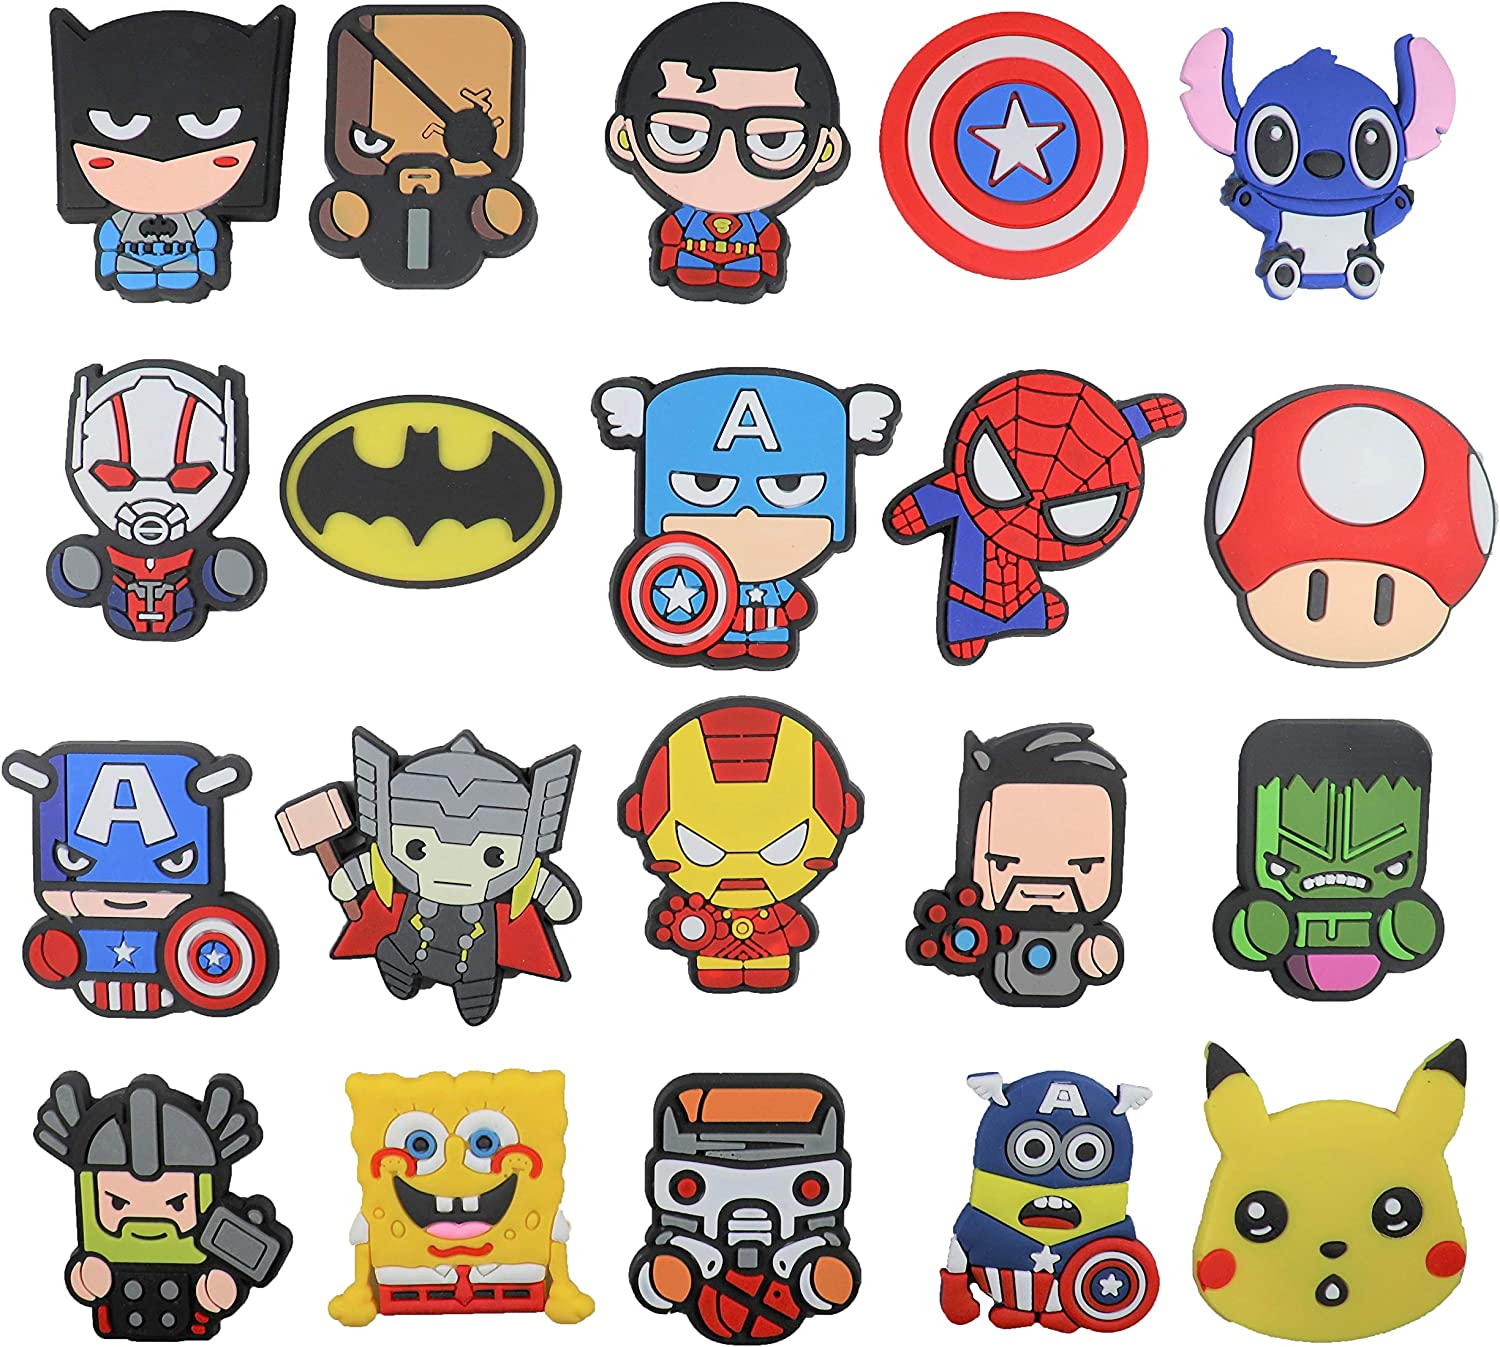 20 pcs avengers Fridge magnets and Cartoon refrigerator magnets for refrigerator, washing machine, dishwasher, cubicle, cabinet, door, locker, best gift for kids, birthday decoration party supplies